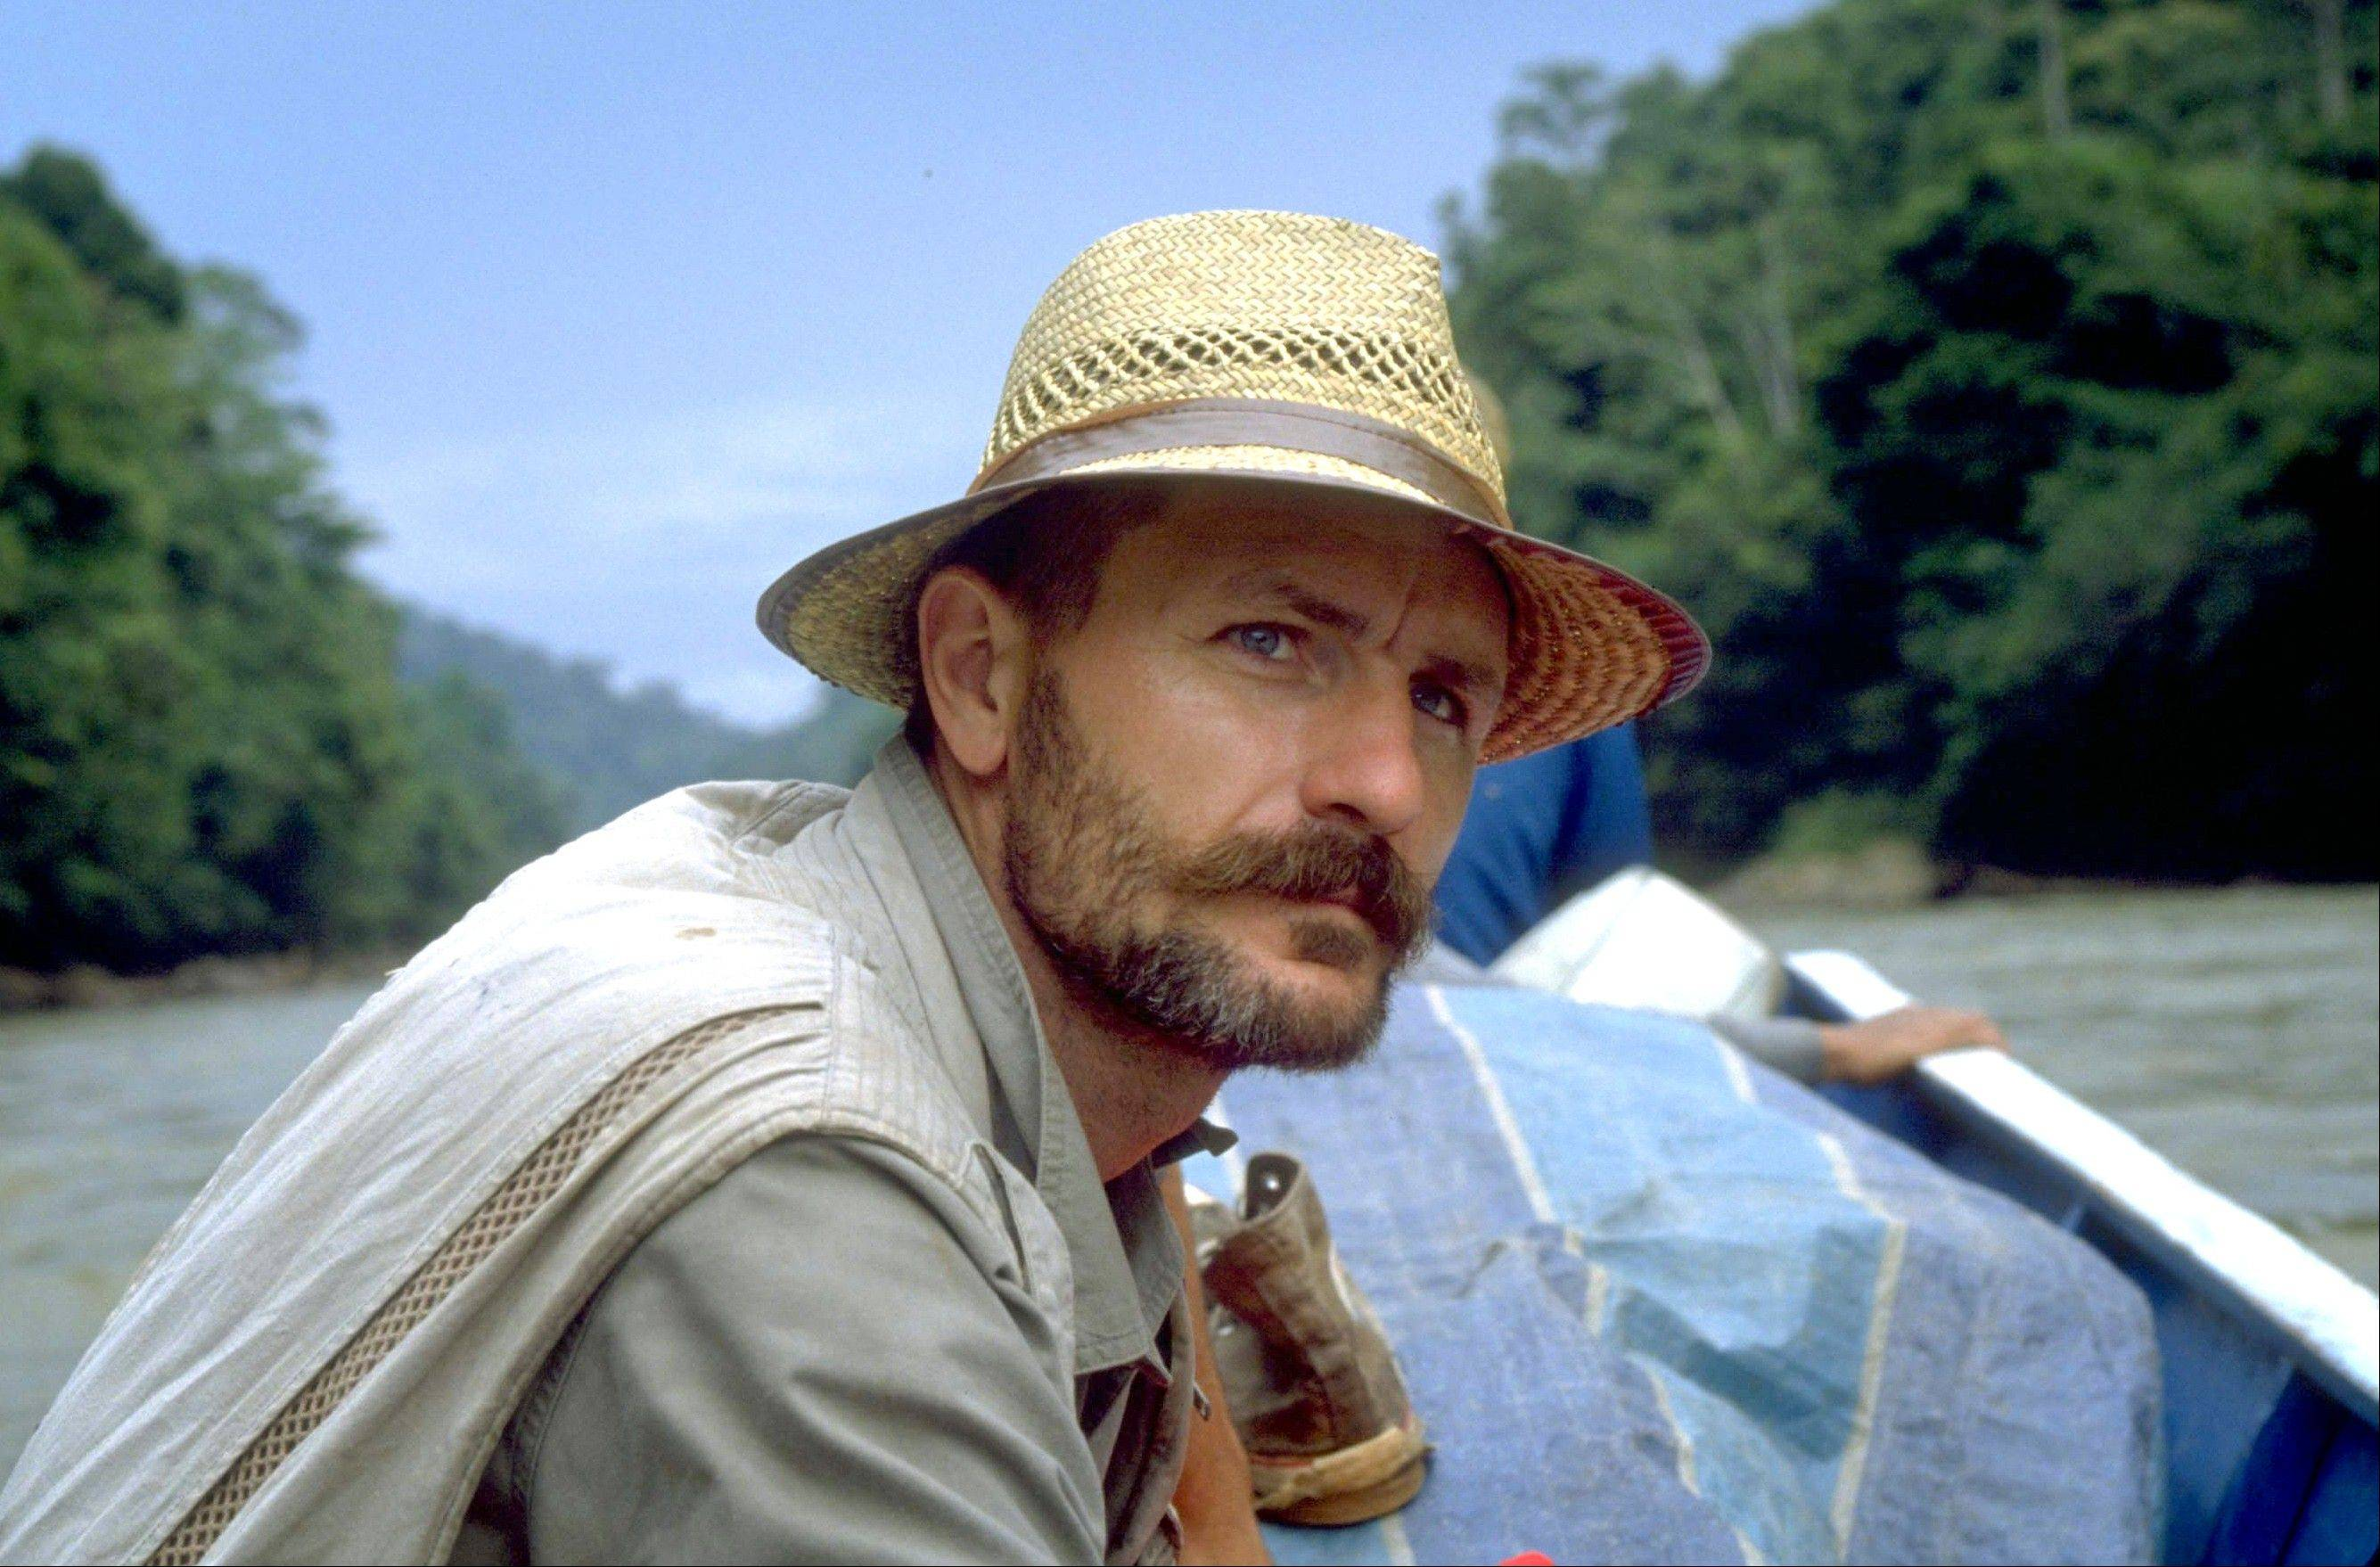 Adventurer Robert Young Pelton, whose crowdfunding scheme has already drawn criticism from a pair of Africa experts, is the latest to join a line of private individuals and aid groups who are trying to corner Joseph Kony and the members of his Lord's Resistance Army.